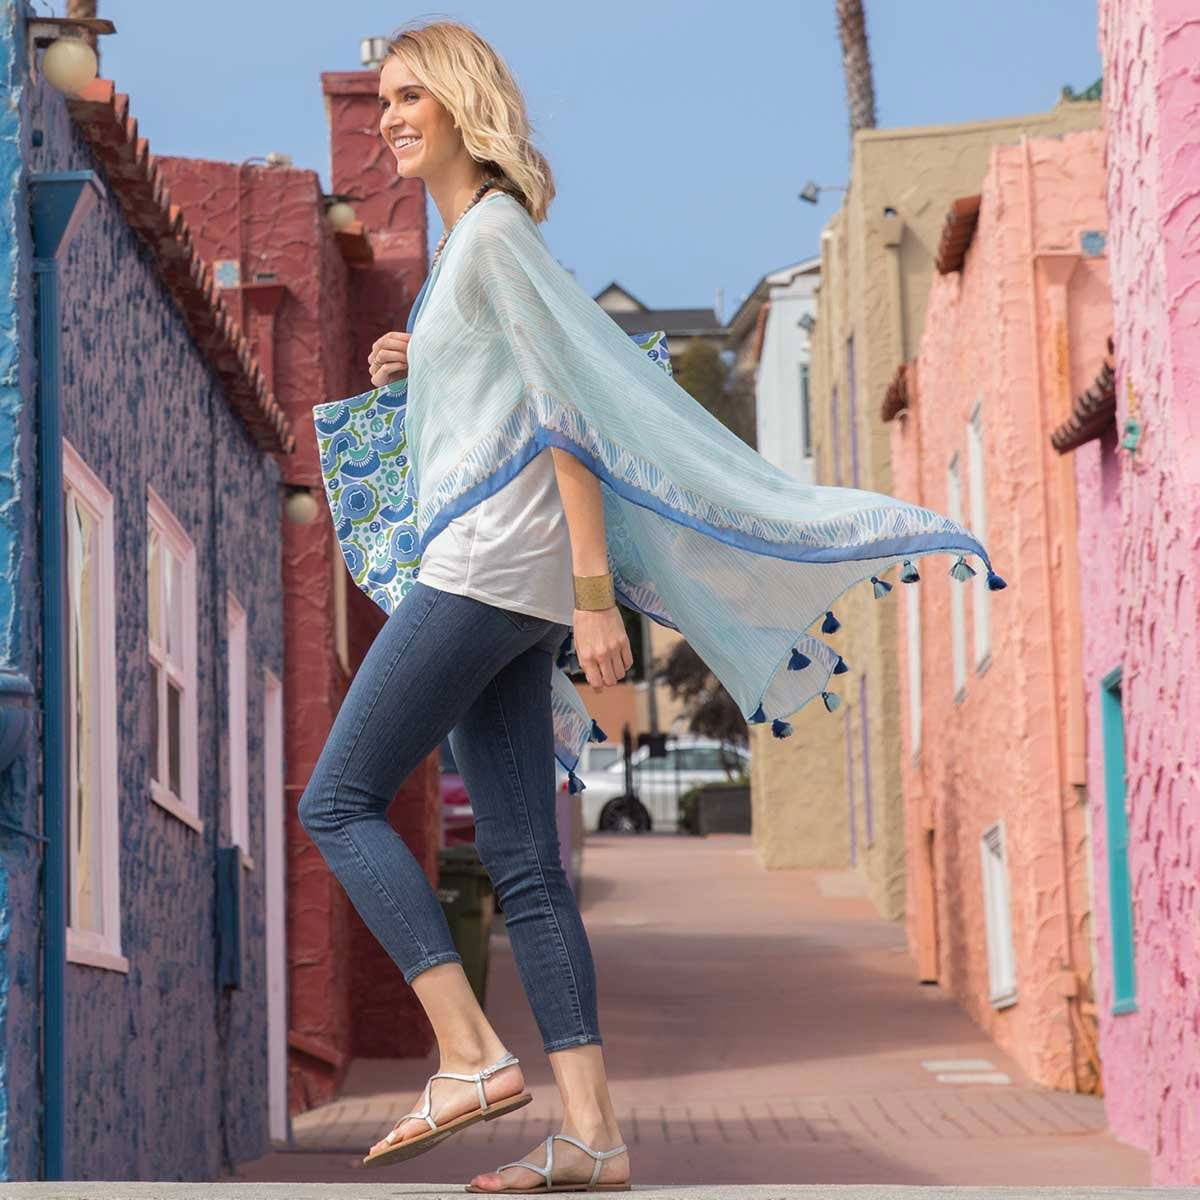 Woman wearing light blue kimono wrap in colorful Capitola, California